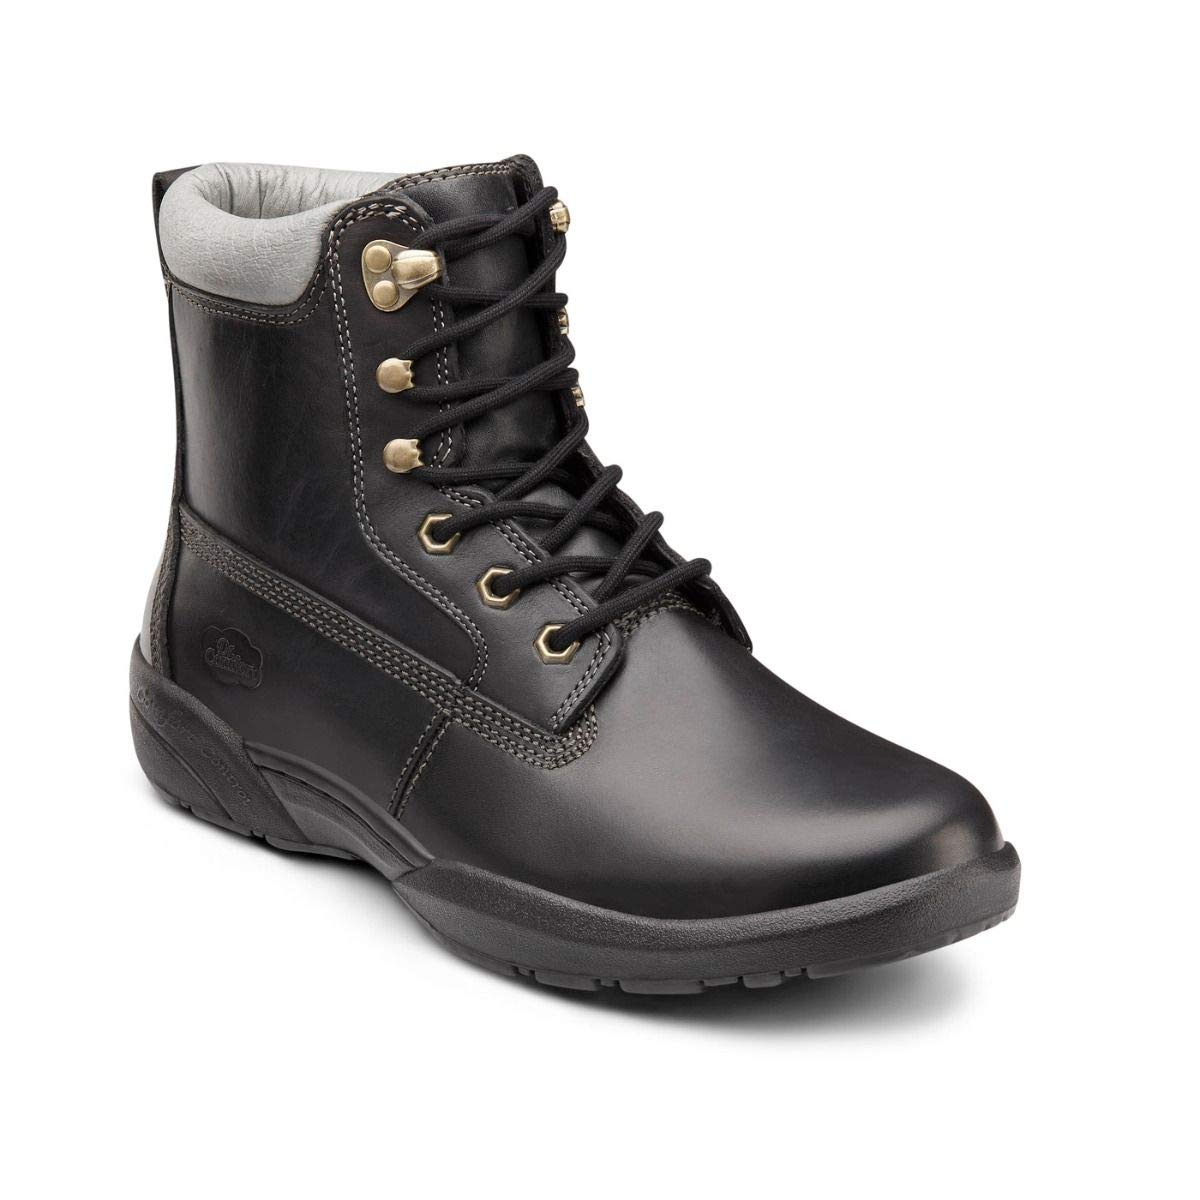 9f27bd07133 Dr. Comfort Men's Boss Diabetic Boots